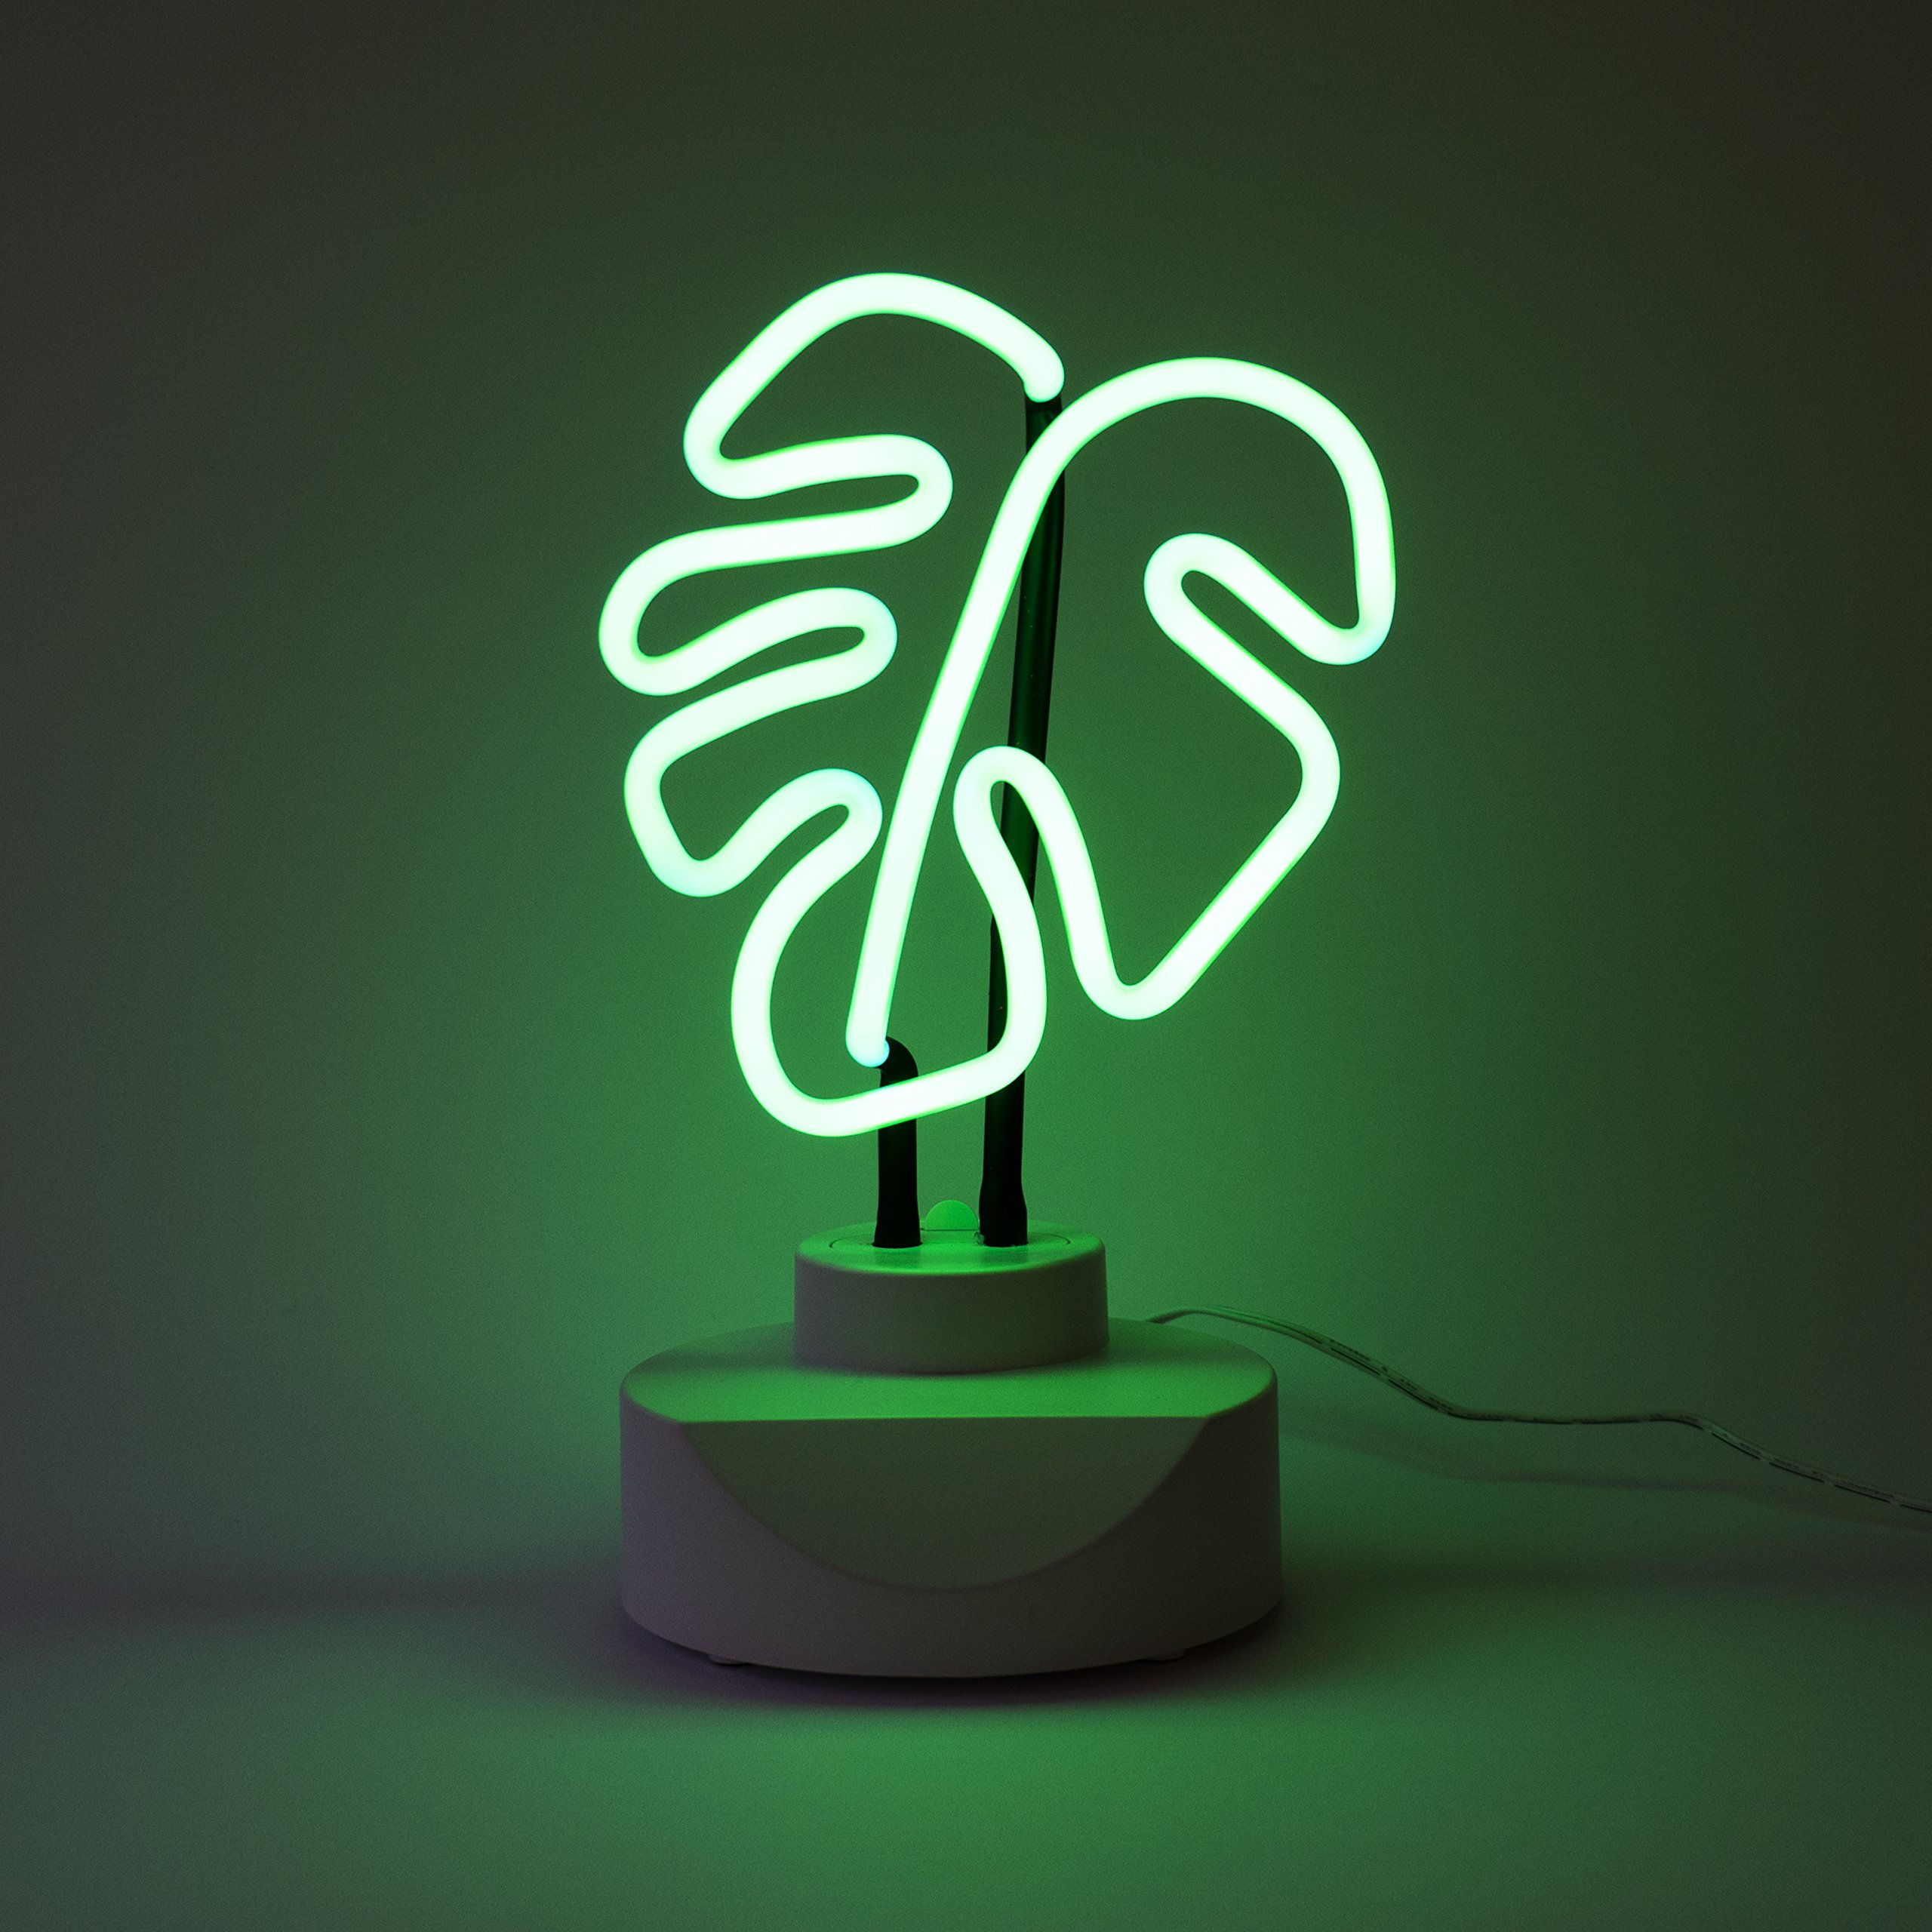 Oliver Gal |Home Tabletop Neon Sign |Original Handmade Neon Table Light. Modern Home Accent. 6x11 inch, Green